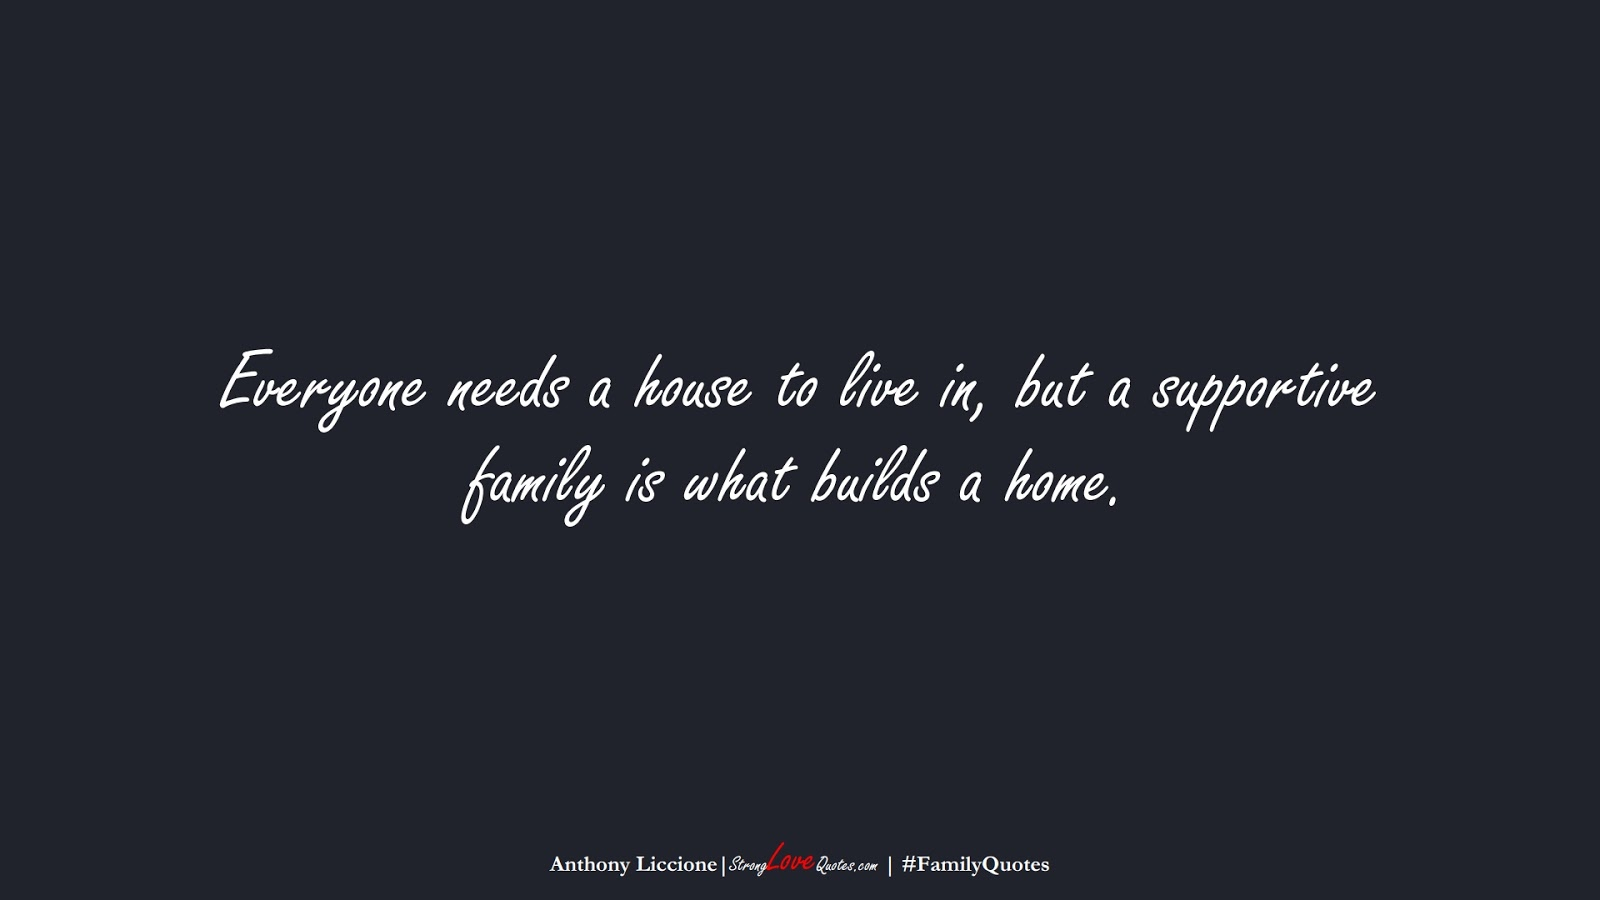 Everyone needs a house to live in, but a supportive family is what builds a home. (Anthony Liccione);  #FamilyQuotes